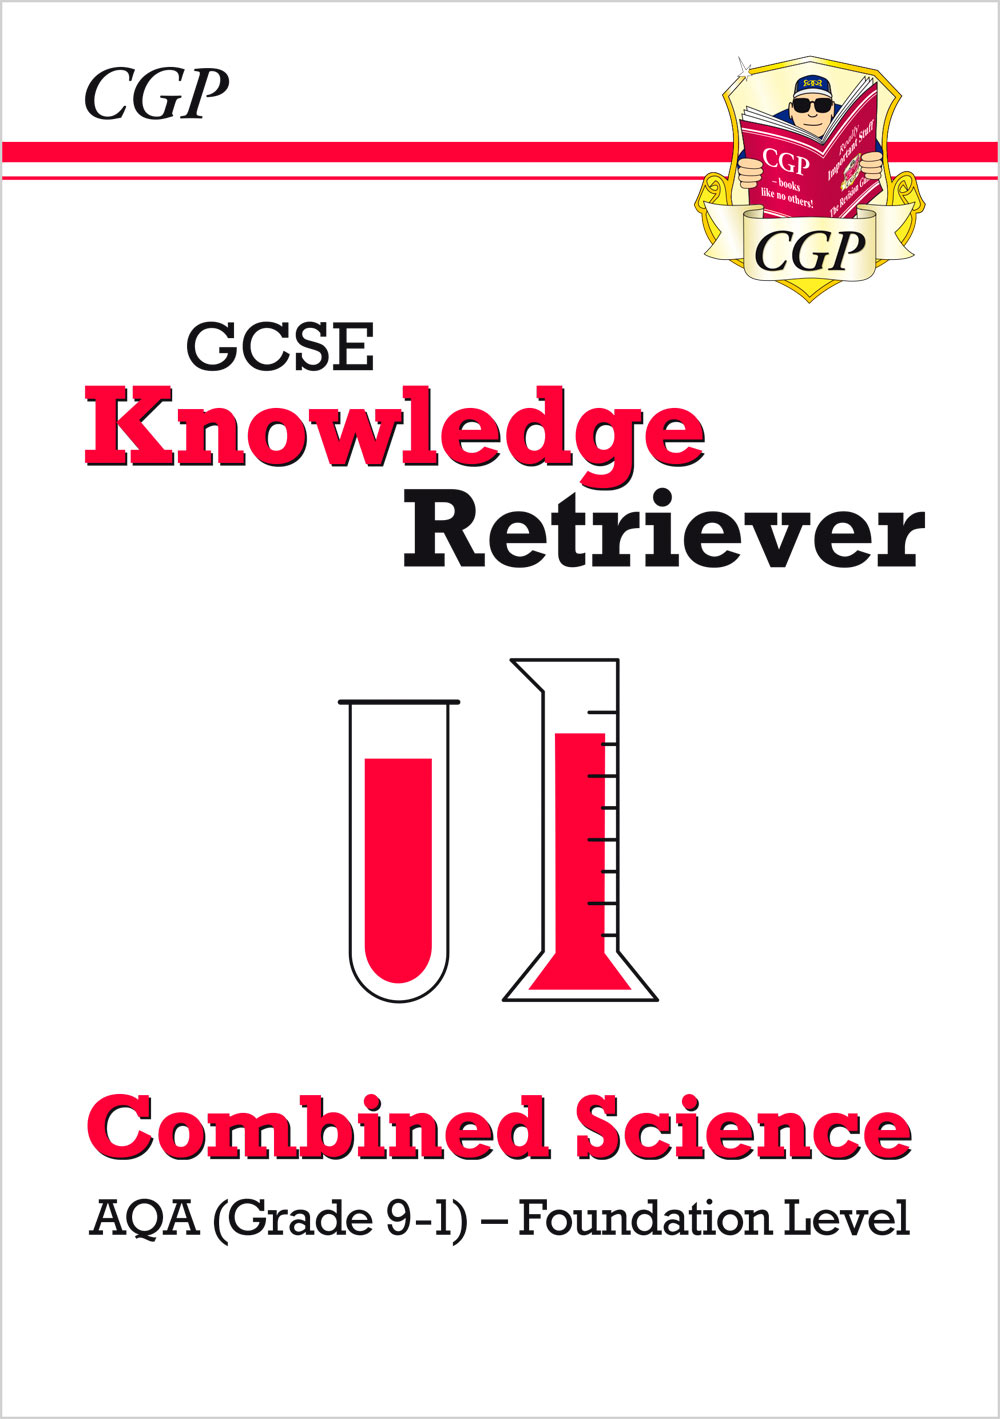 SCAFNR41 - New GCSE Knowledge Retriever: AQA Combined Science - Foundation (Grade 9-1)